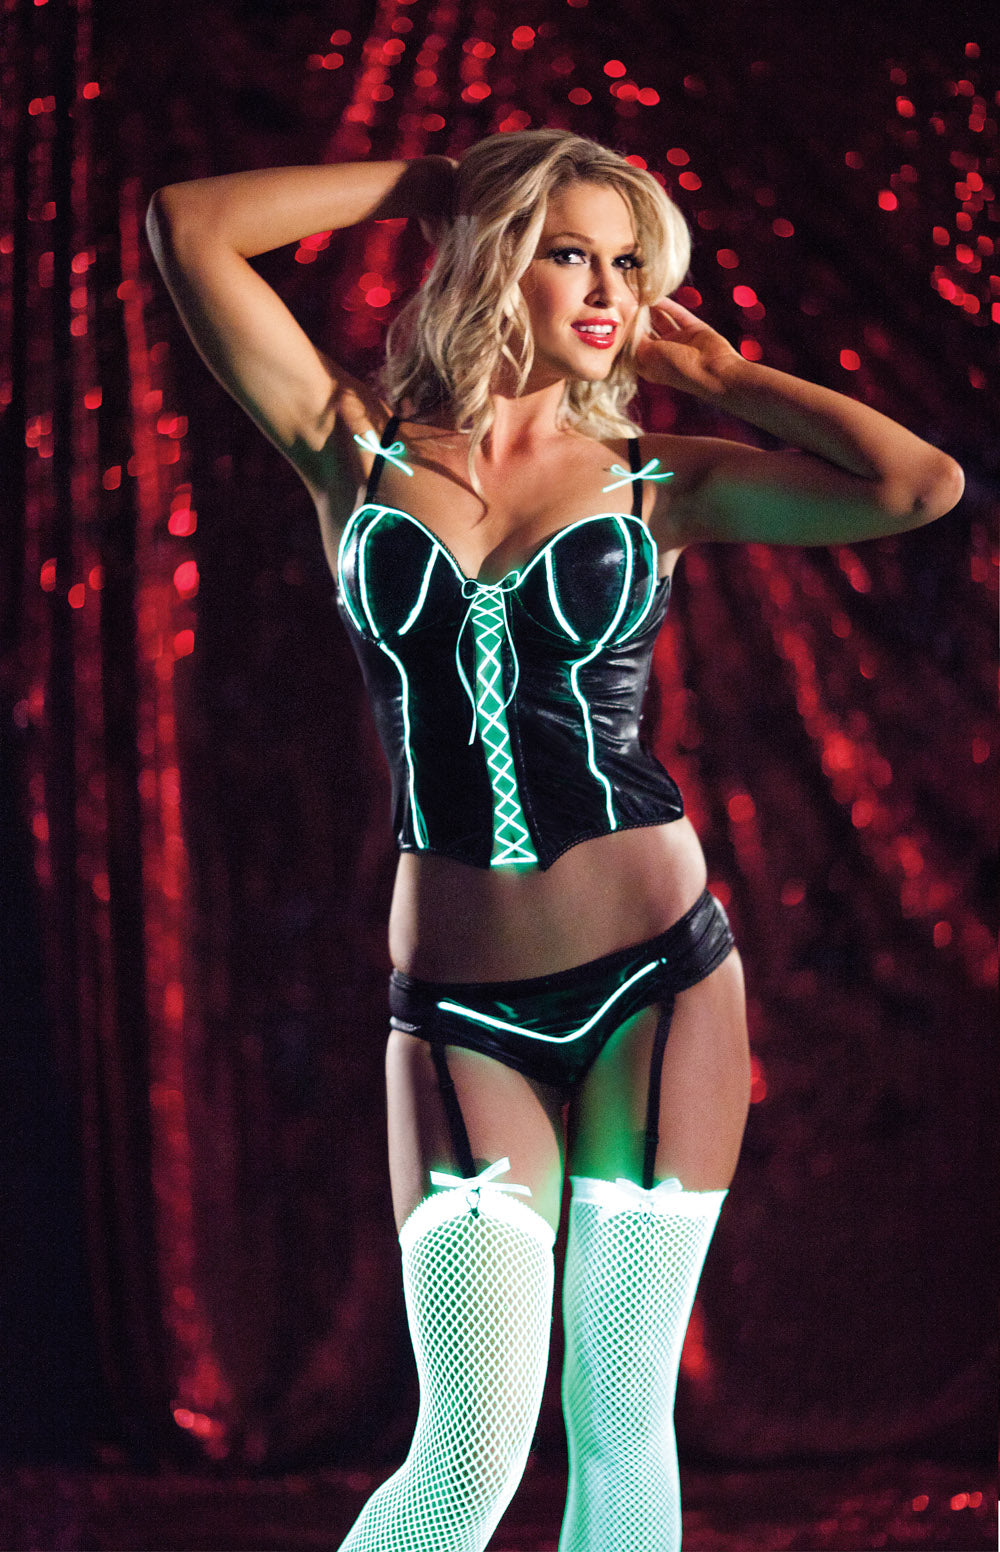 Glow in the Dark Bustier Rave Outfit (UV detail)